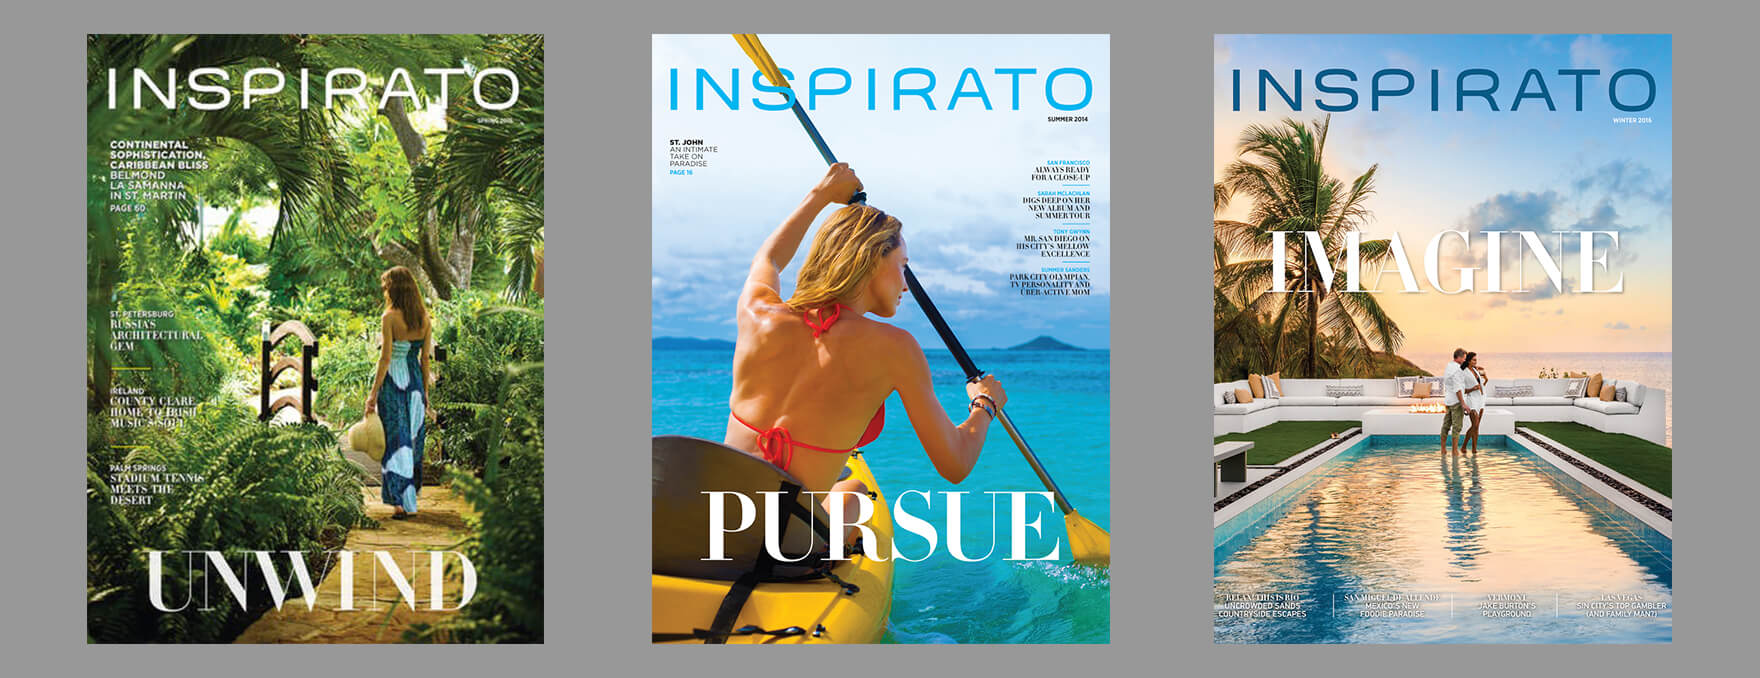 InspiratoCover-luxury-vacation-homes